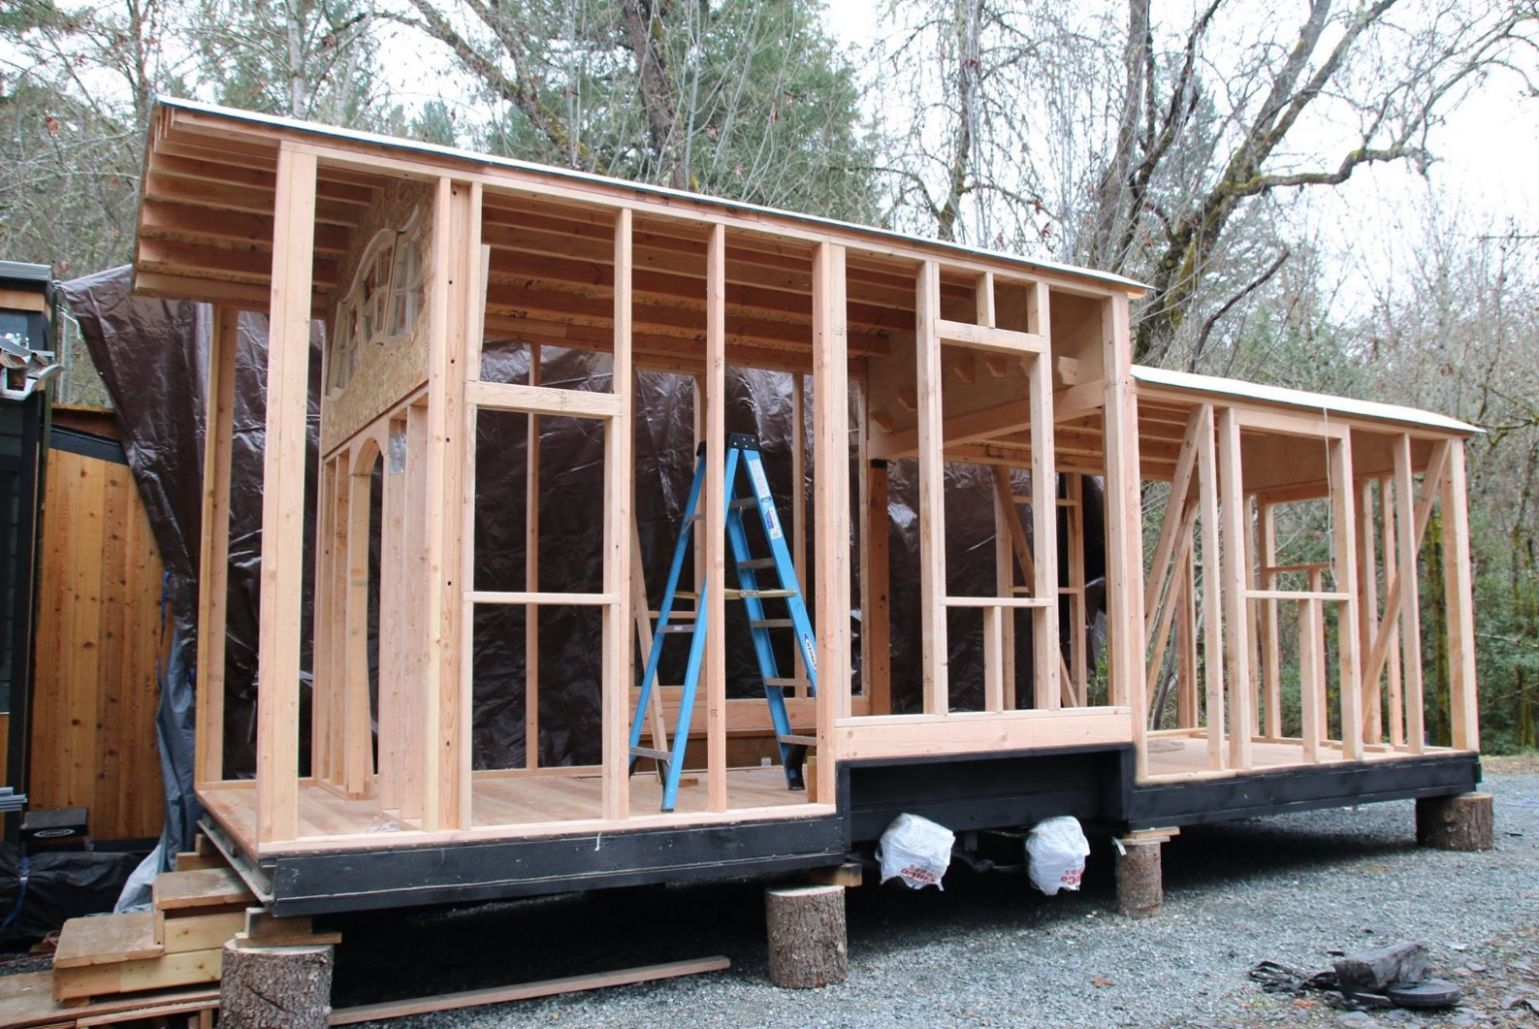 Q&A: How Much Does it Cost to Build a Tiny House? - tiny house cost